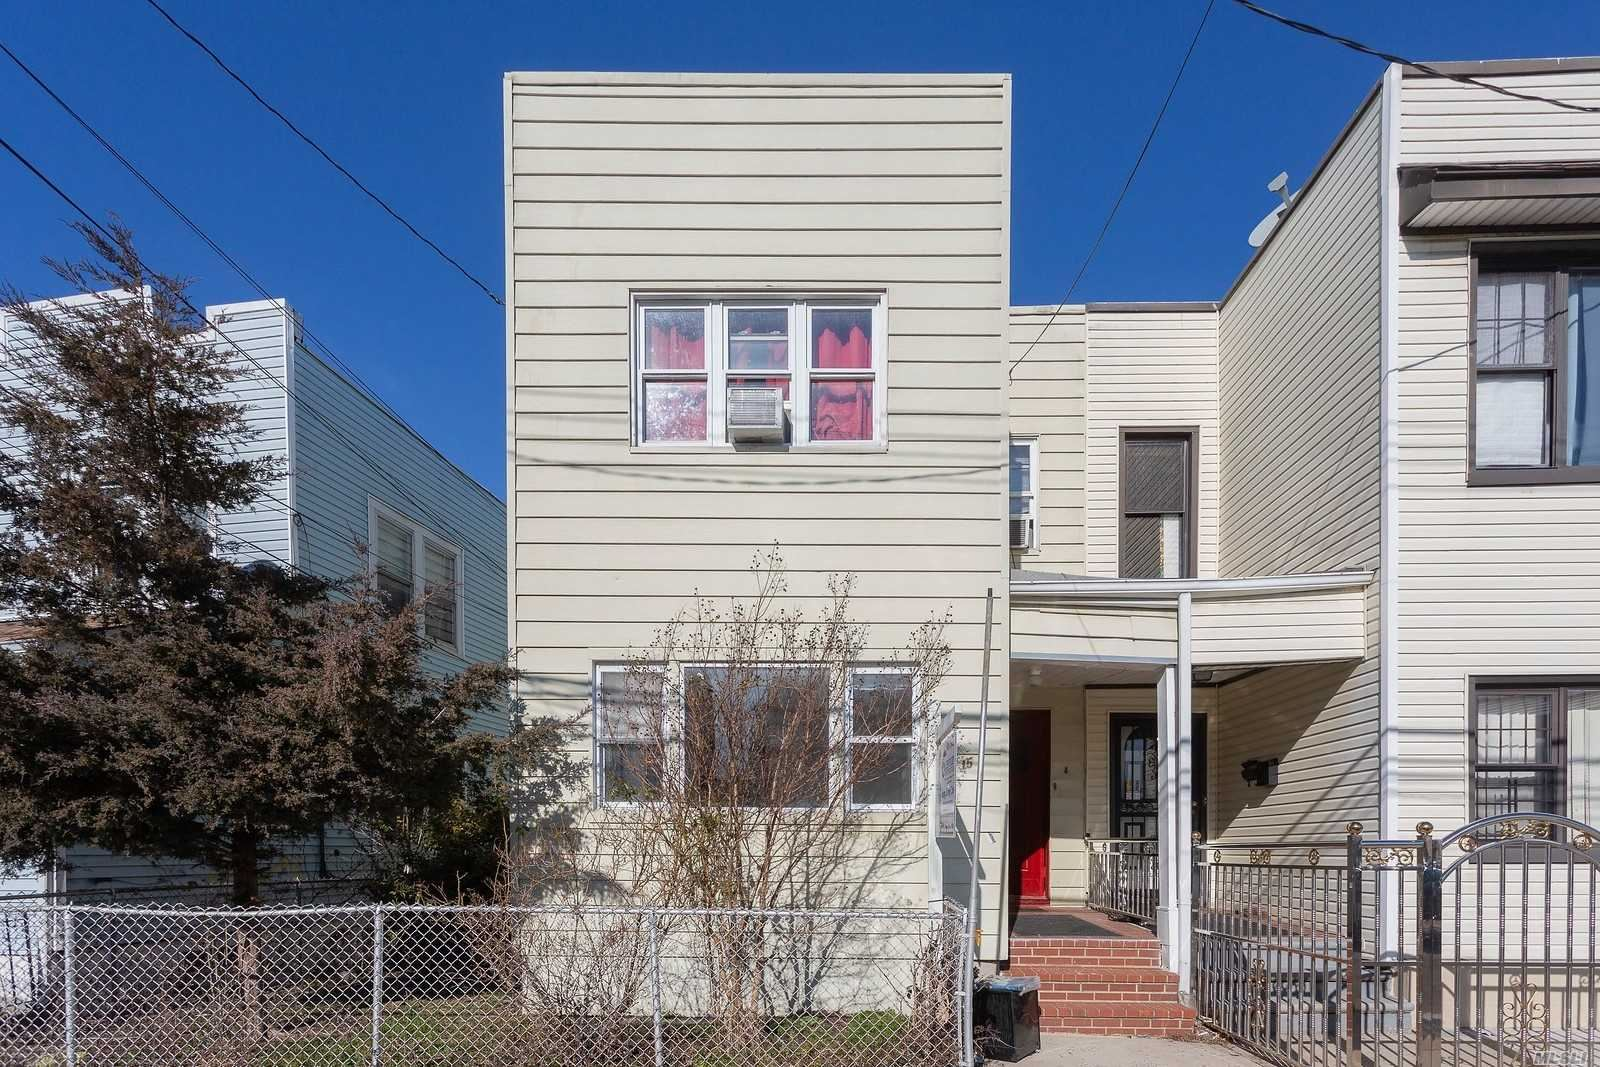 74-15 95th Avenue, Ozone Park, NY 11416 - MLS#: 3219354